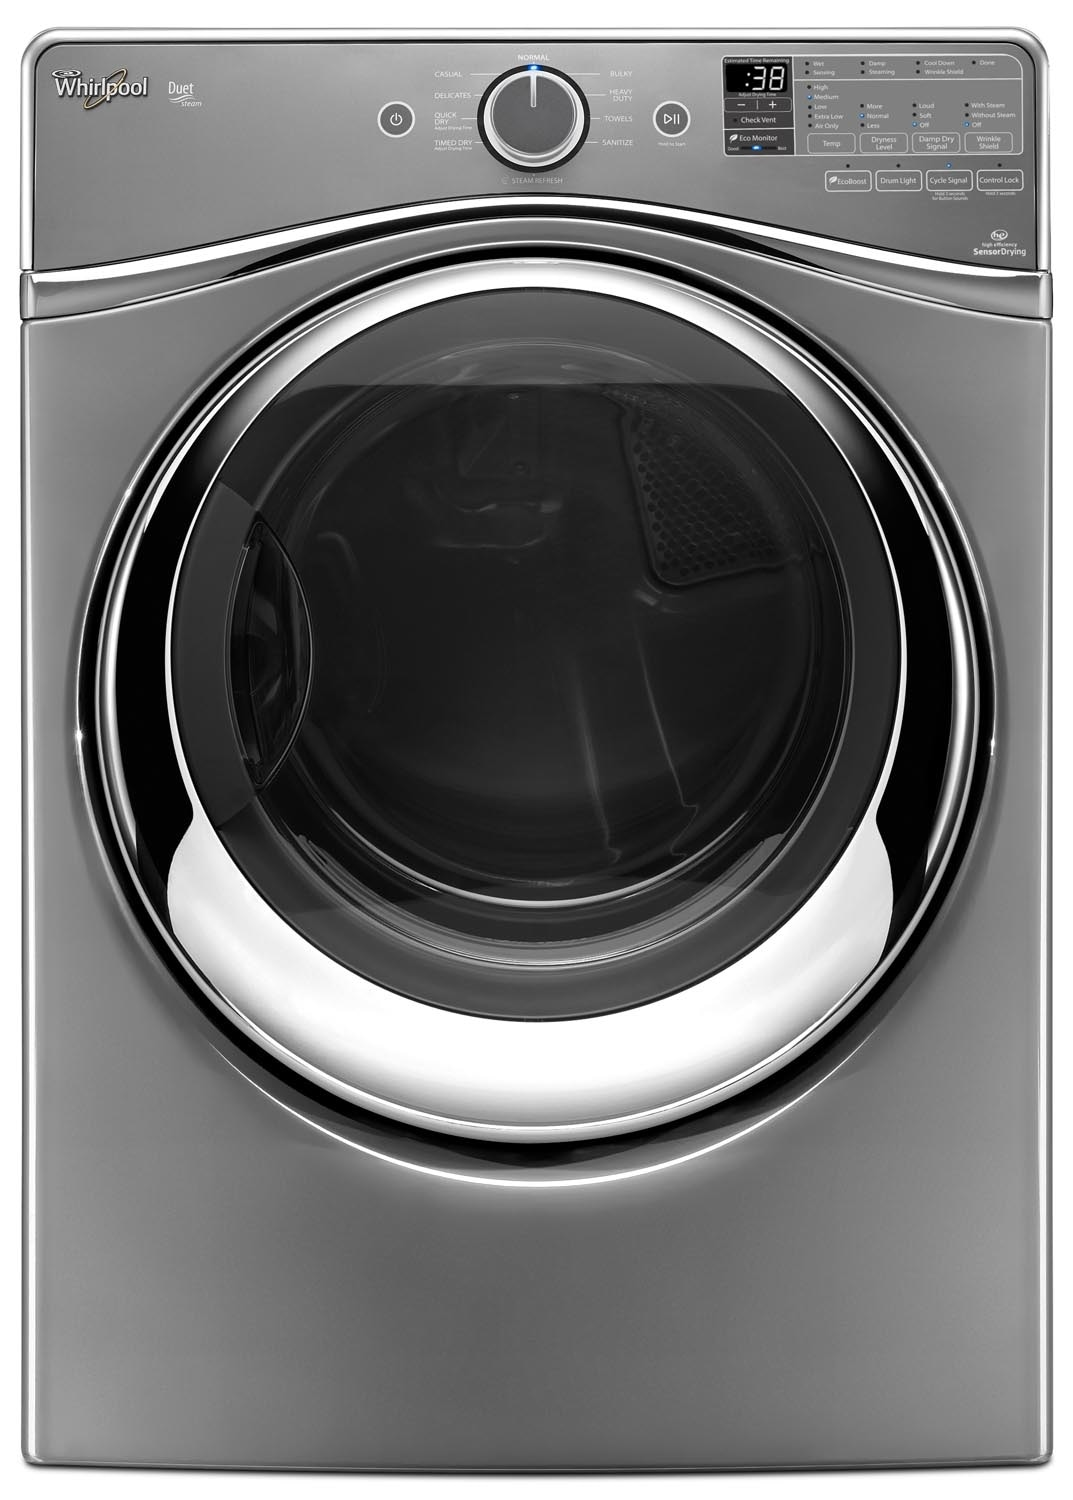 Washers and Dryers - Whirlpool Chrome Shadow Gas Dryer (7.3 Cu. Ft.) - WGD95HEDC